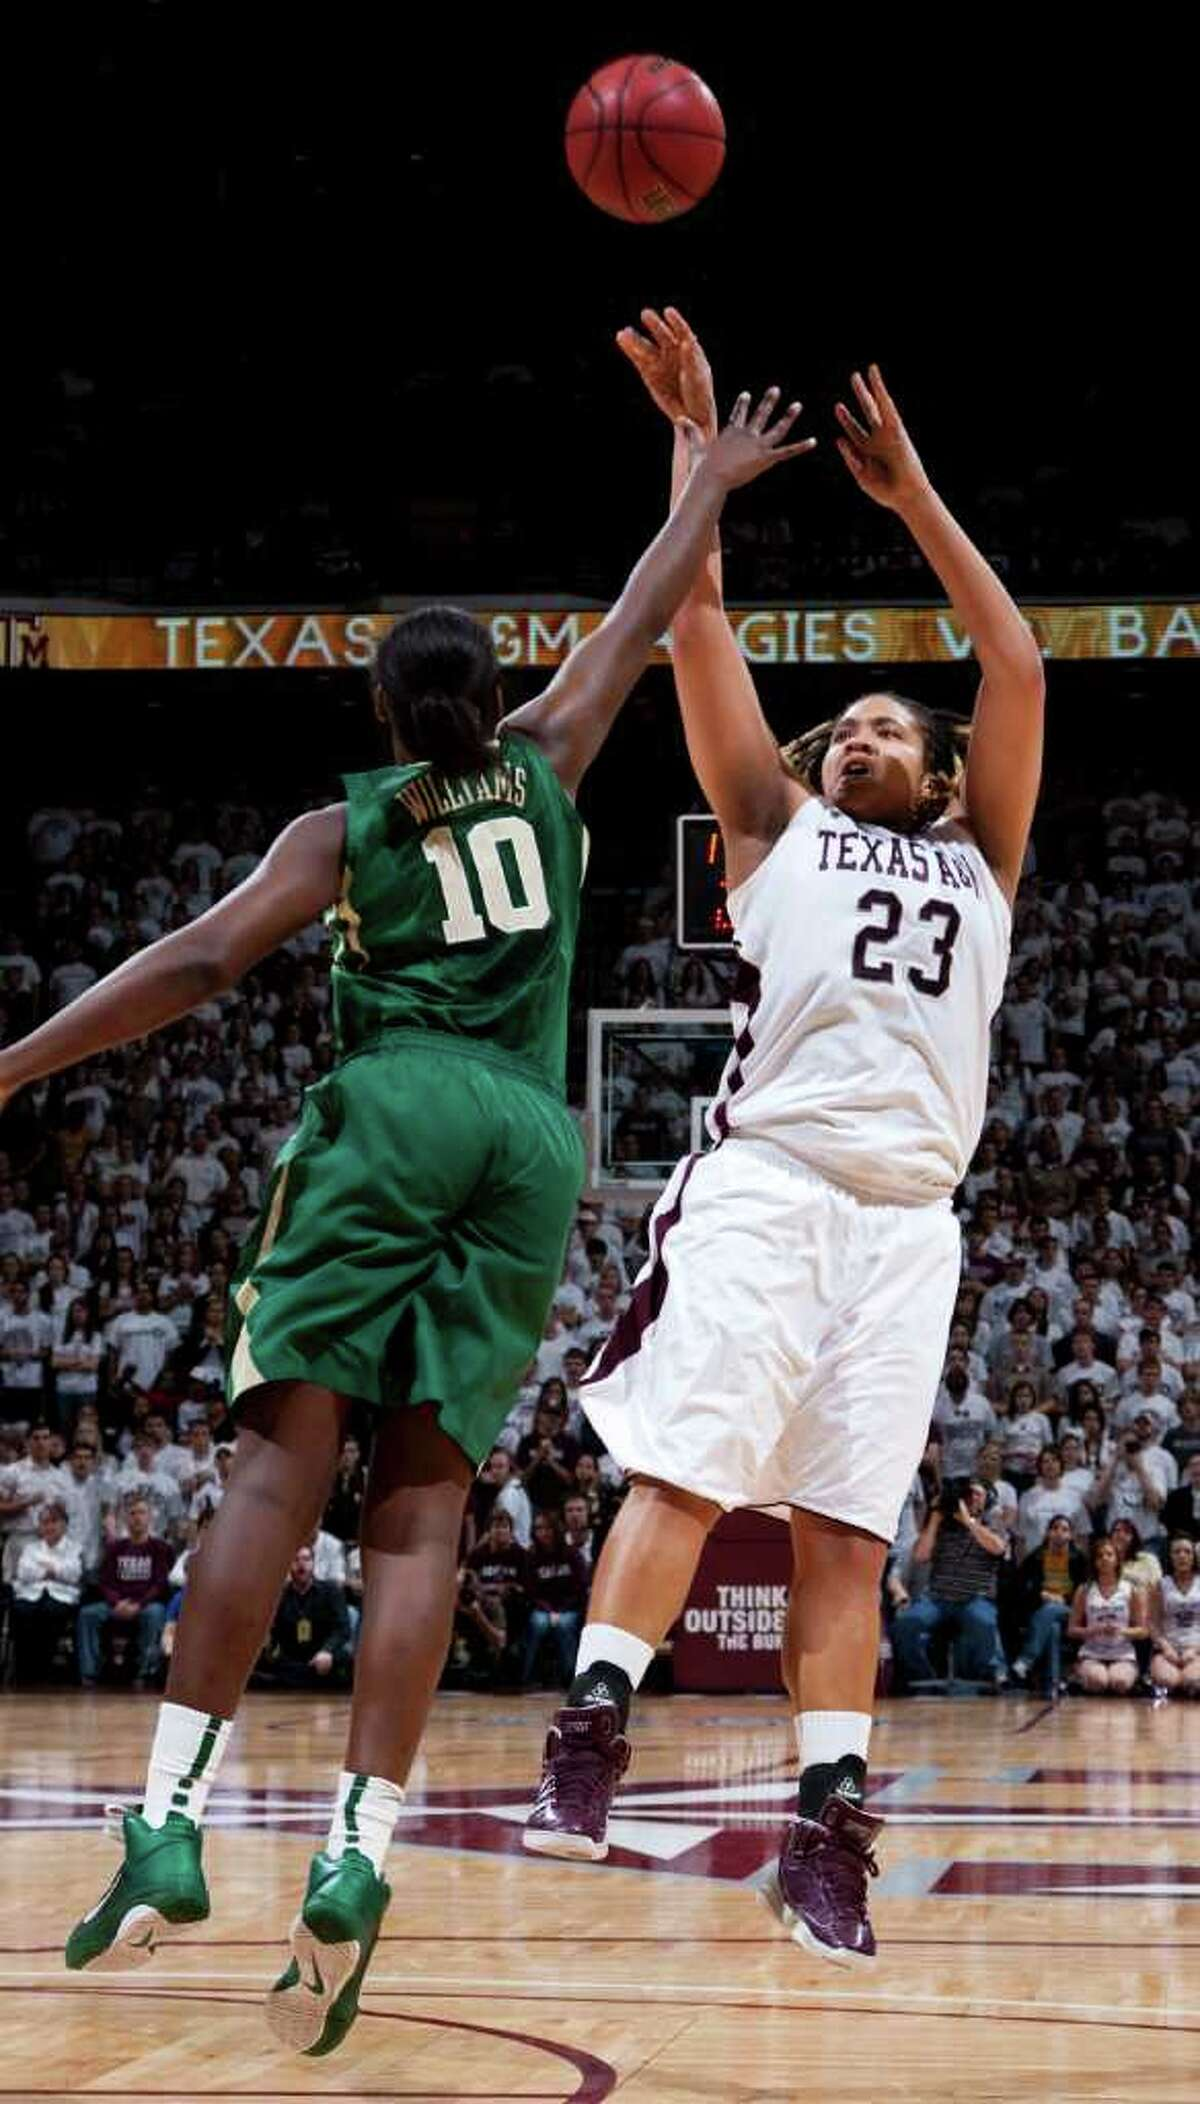 Texas A&M's Danielle Adams (right) shoots the ball over Baylor's Destiny Williams during the first half on Sunday, Jan. 30, 2011, in College Station.